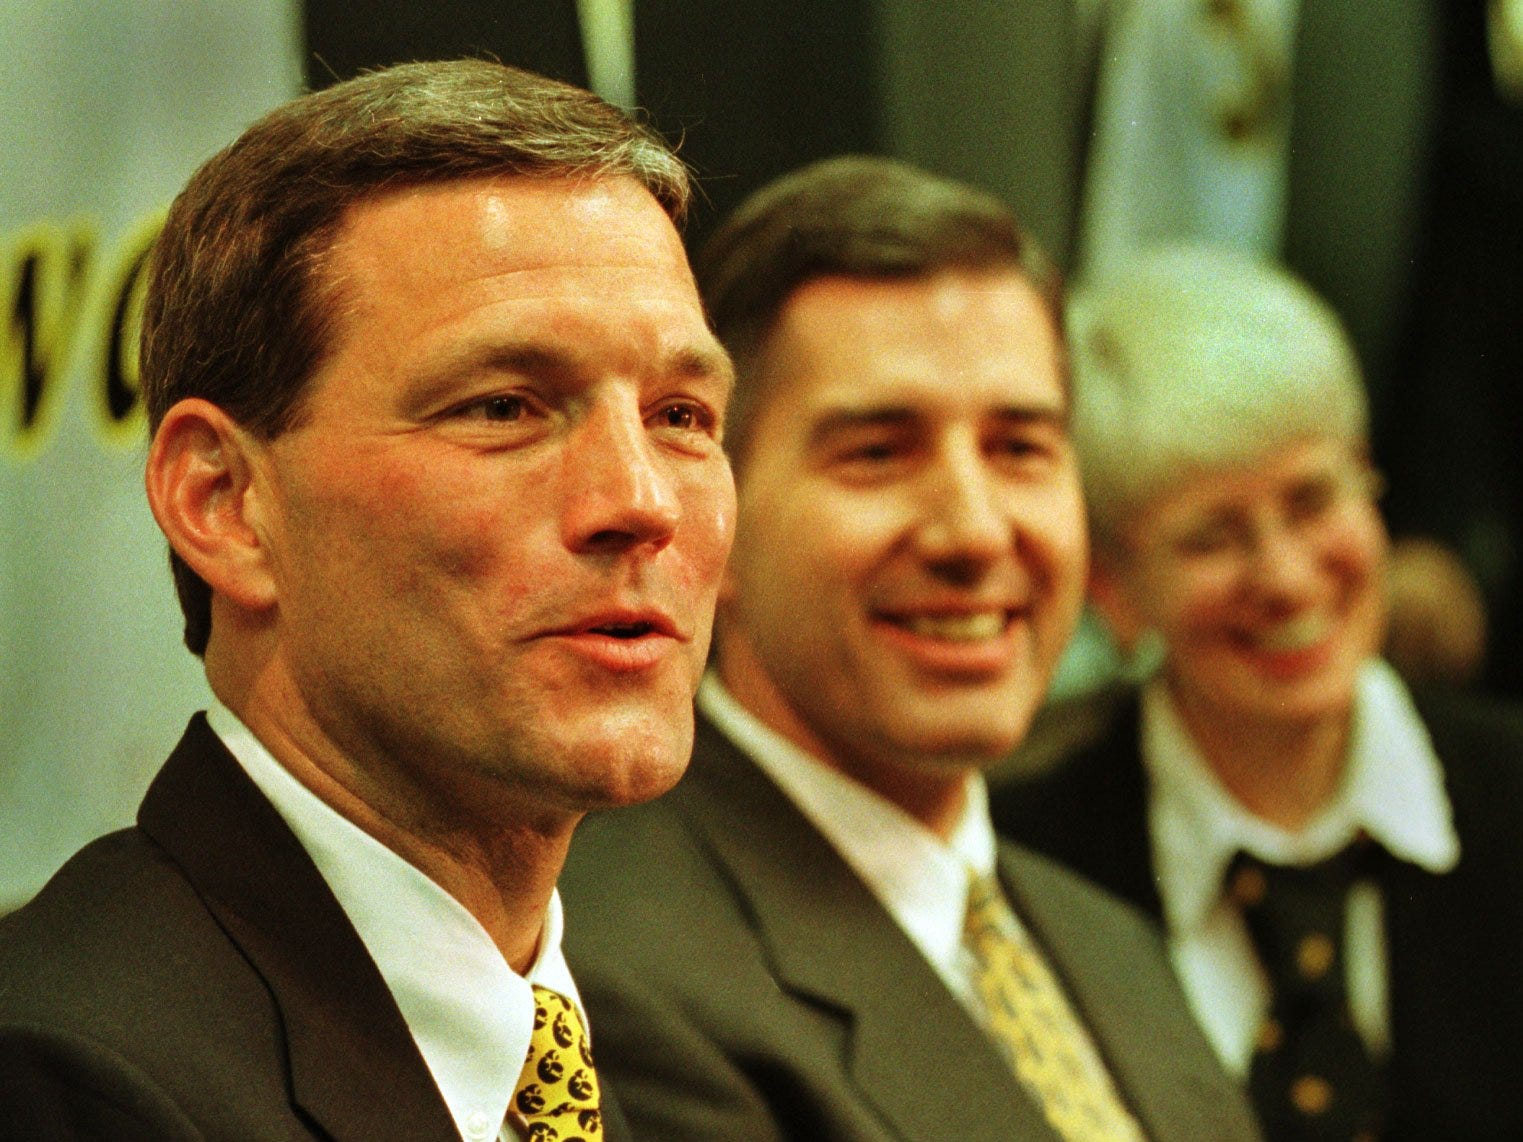 New Iowa Hawkeyes football coach Kirk Ferentz, left, answers a question at a press conference announcing his appointment on Dec. 3, 1998. With him are UI Athletic Director Bob Bowlsby and UI President Mary Sue Coleman.